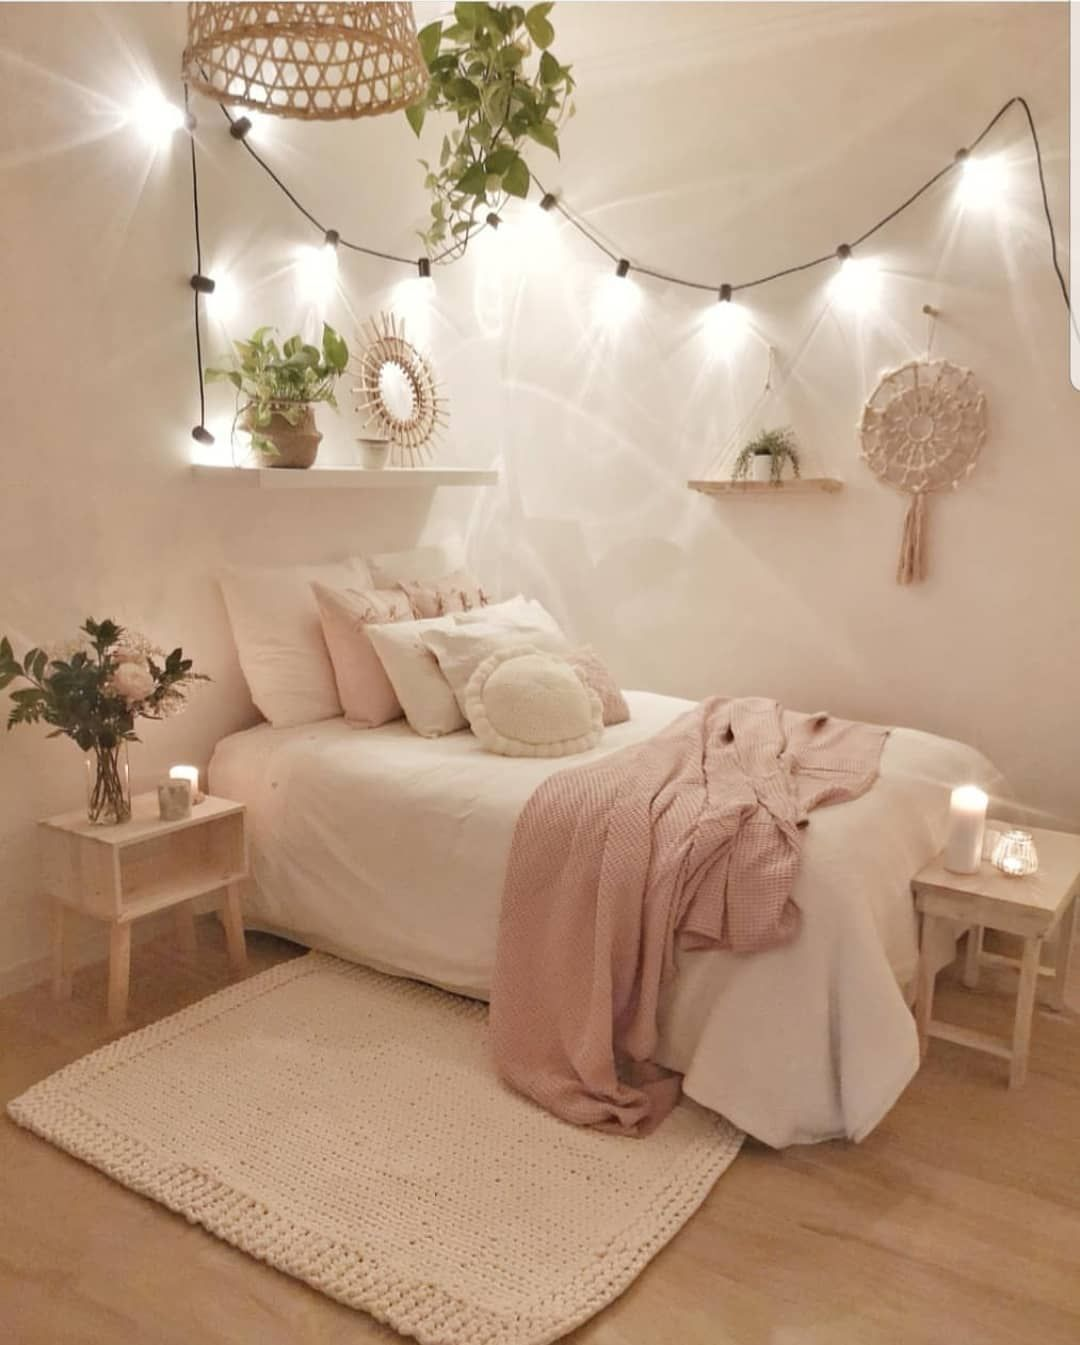 Credit Sandradeco Sweet Home Bedroomdecor Bedroom Inspire Me Home Decor Interiorstyl Decoration Chambre Cocooning Decoration Chambre Ado Idees Chambre